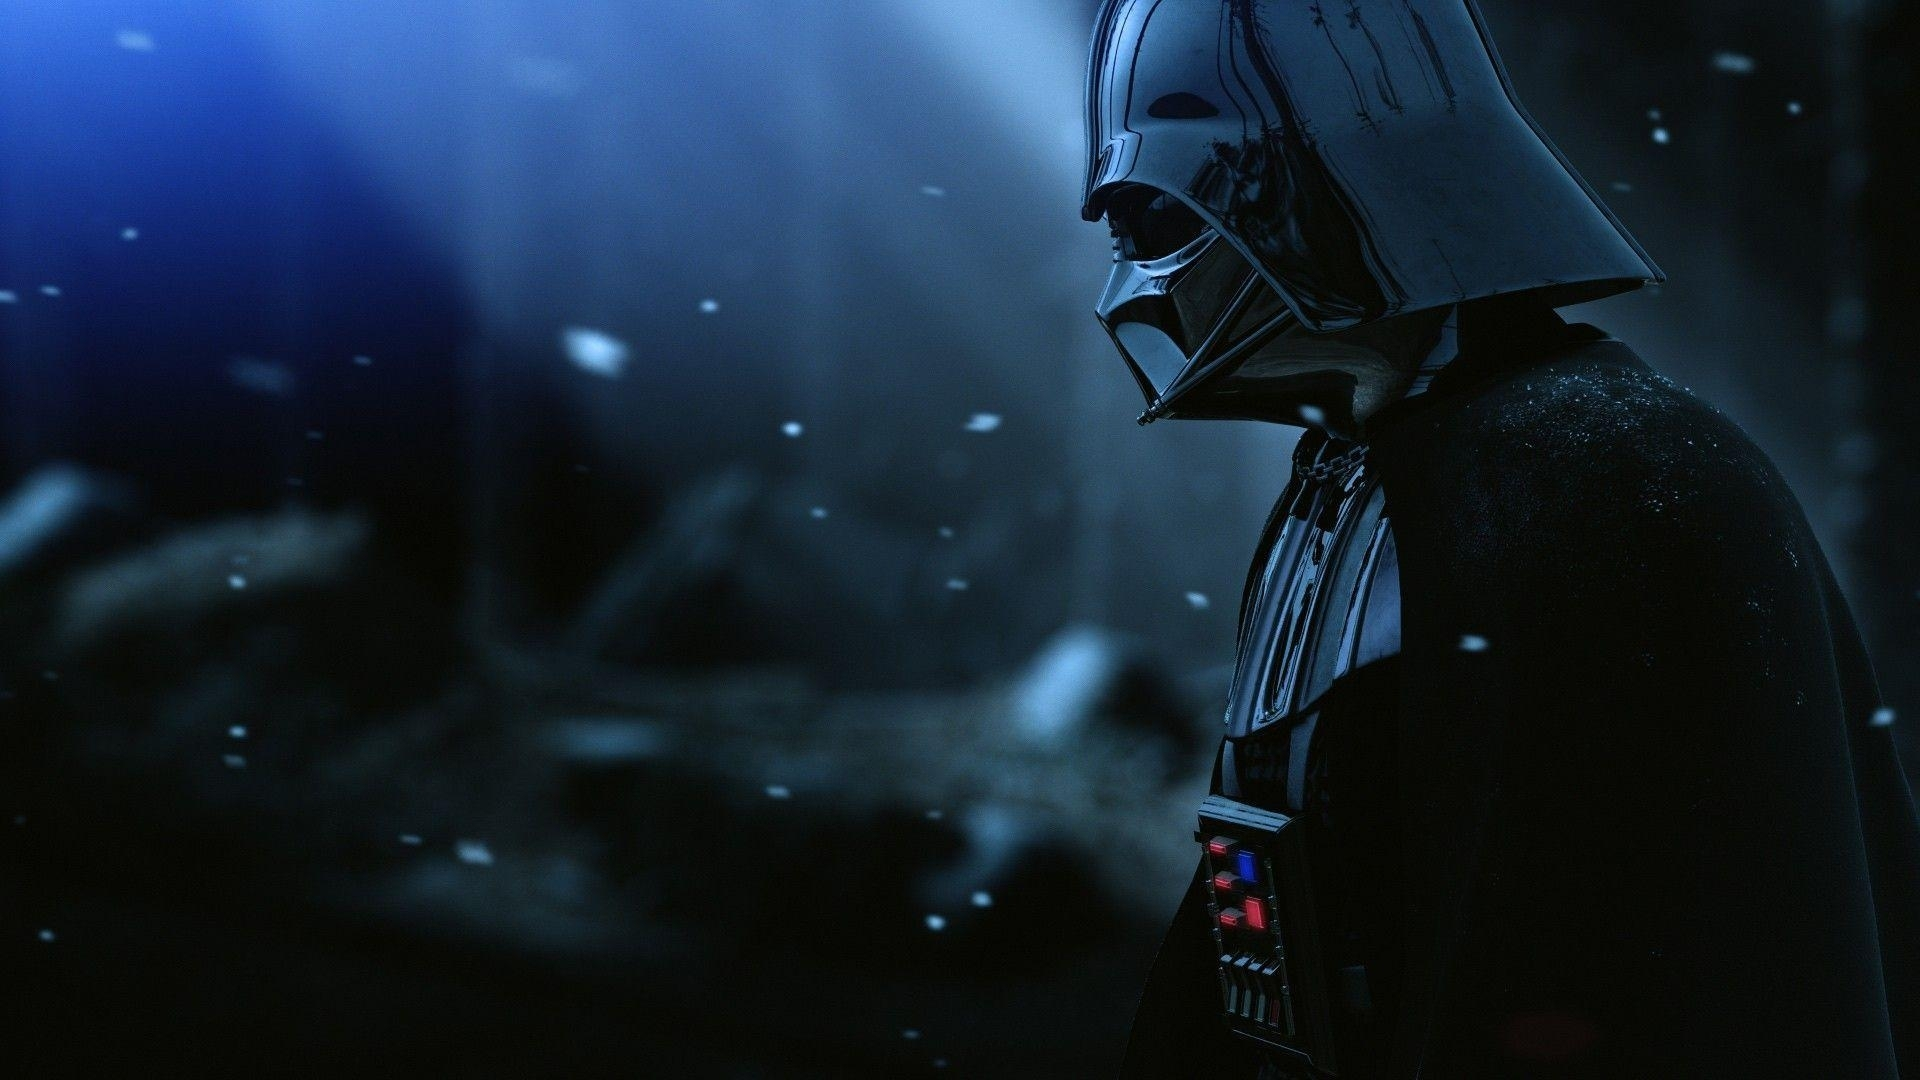 star wars wallpapers 1920x1080 - wallpaper cave